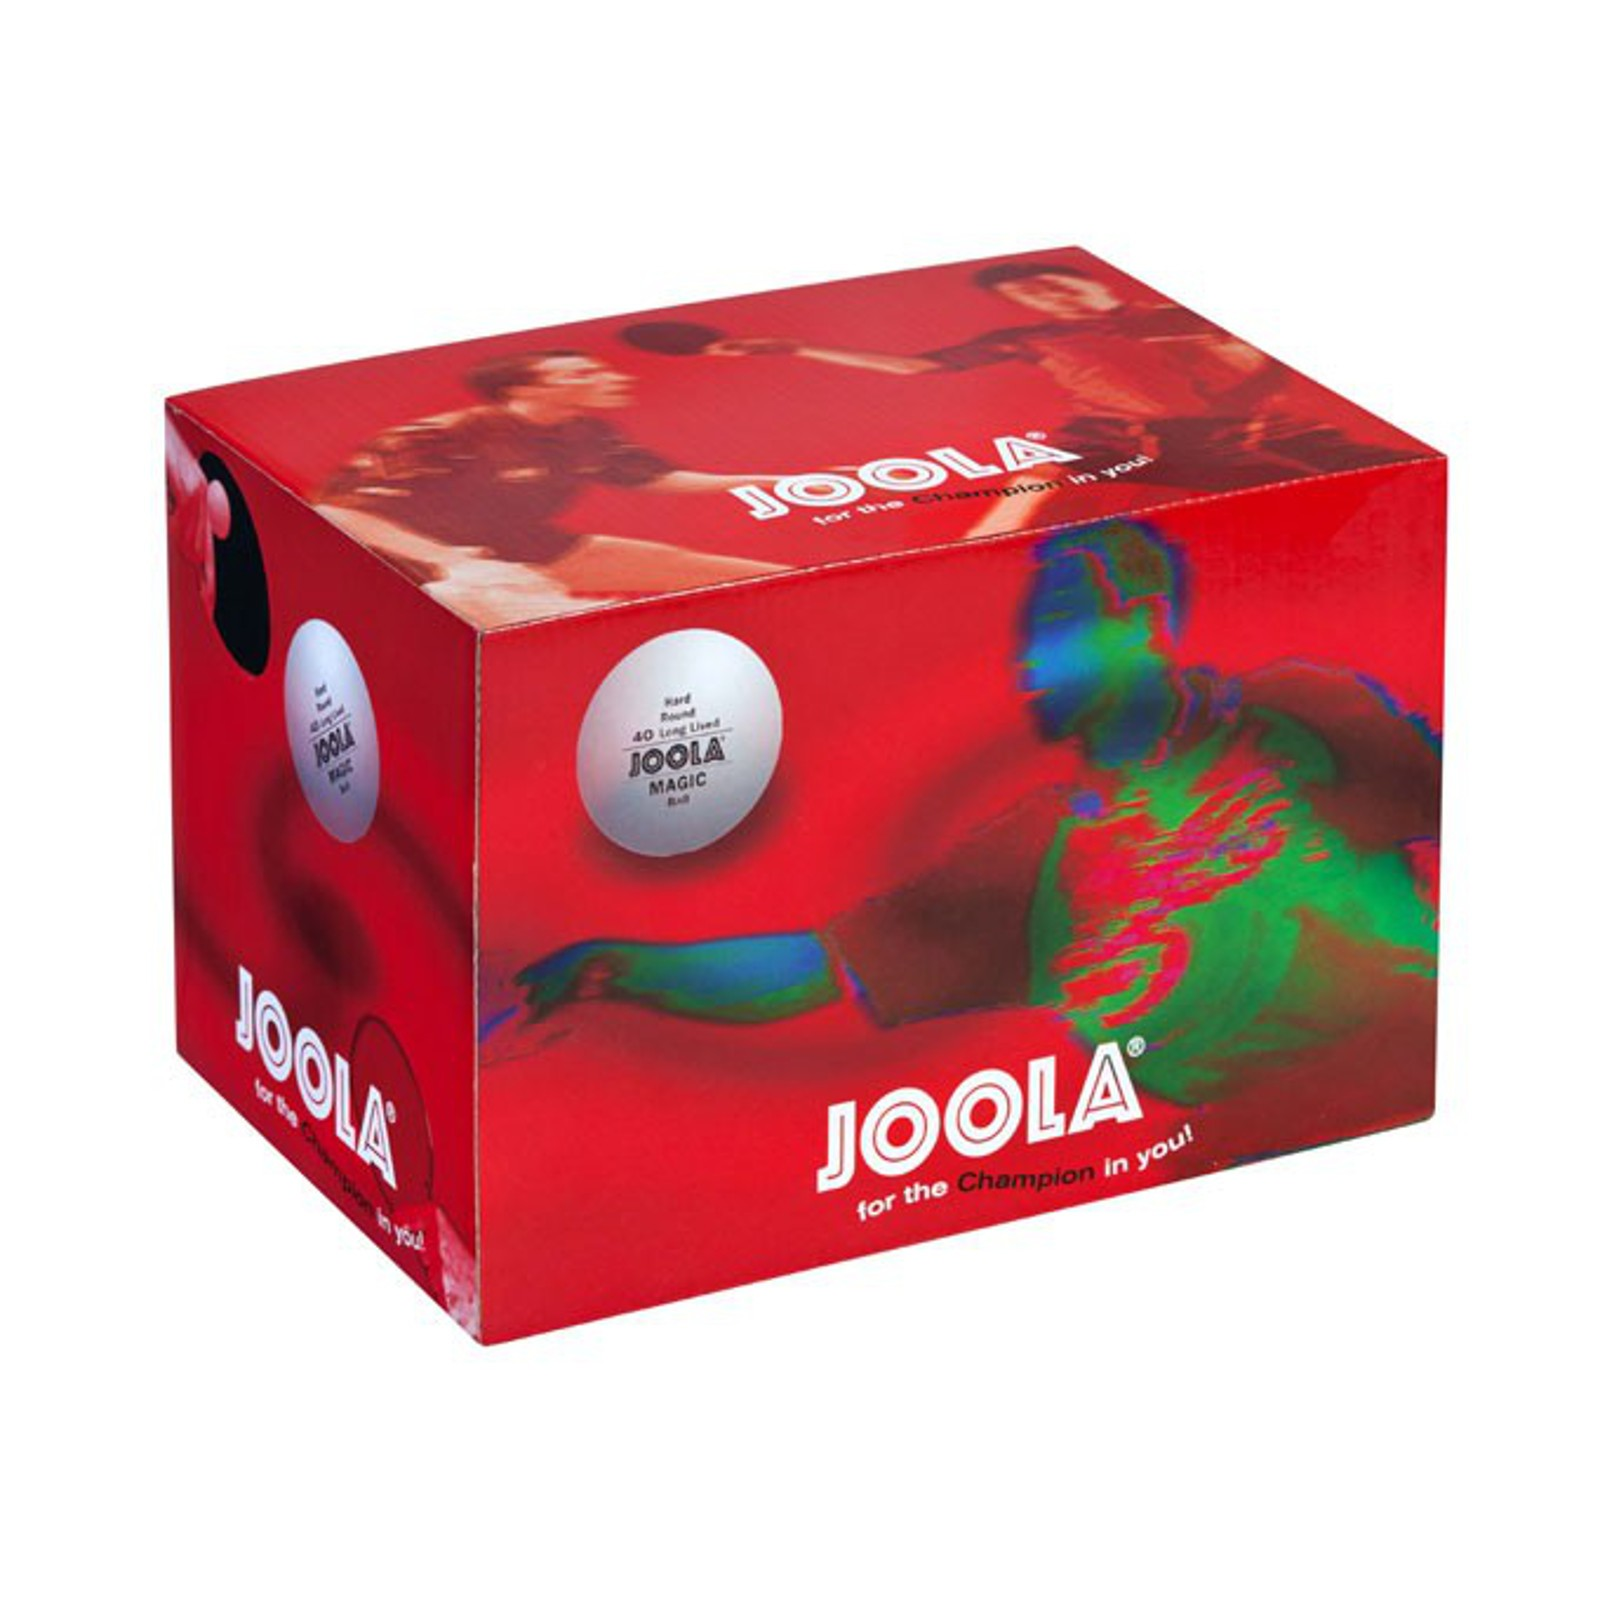 Joola table tennis ball magic ball 100 box white buy with for 100 table tennis balls